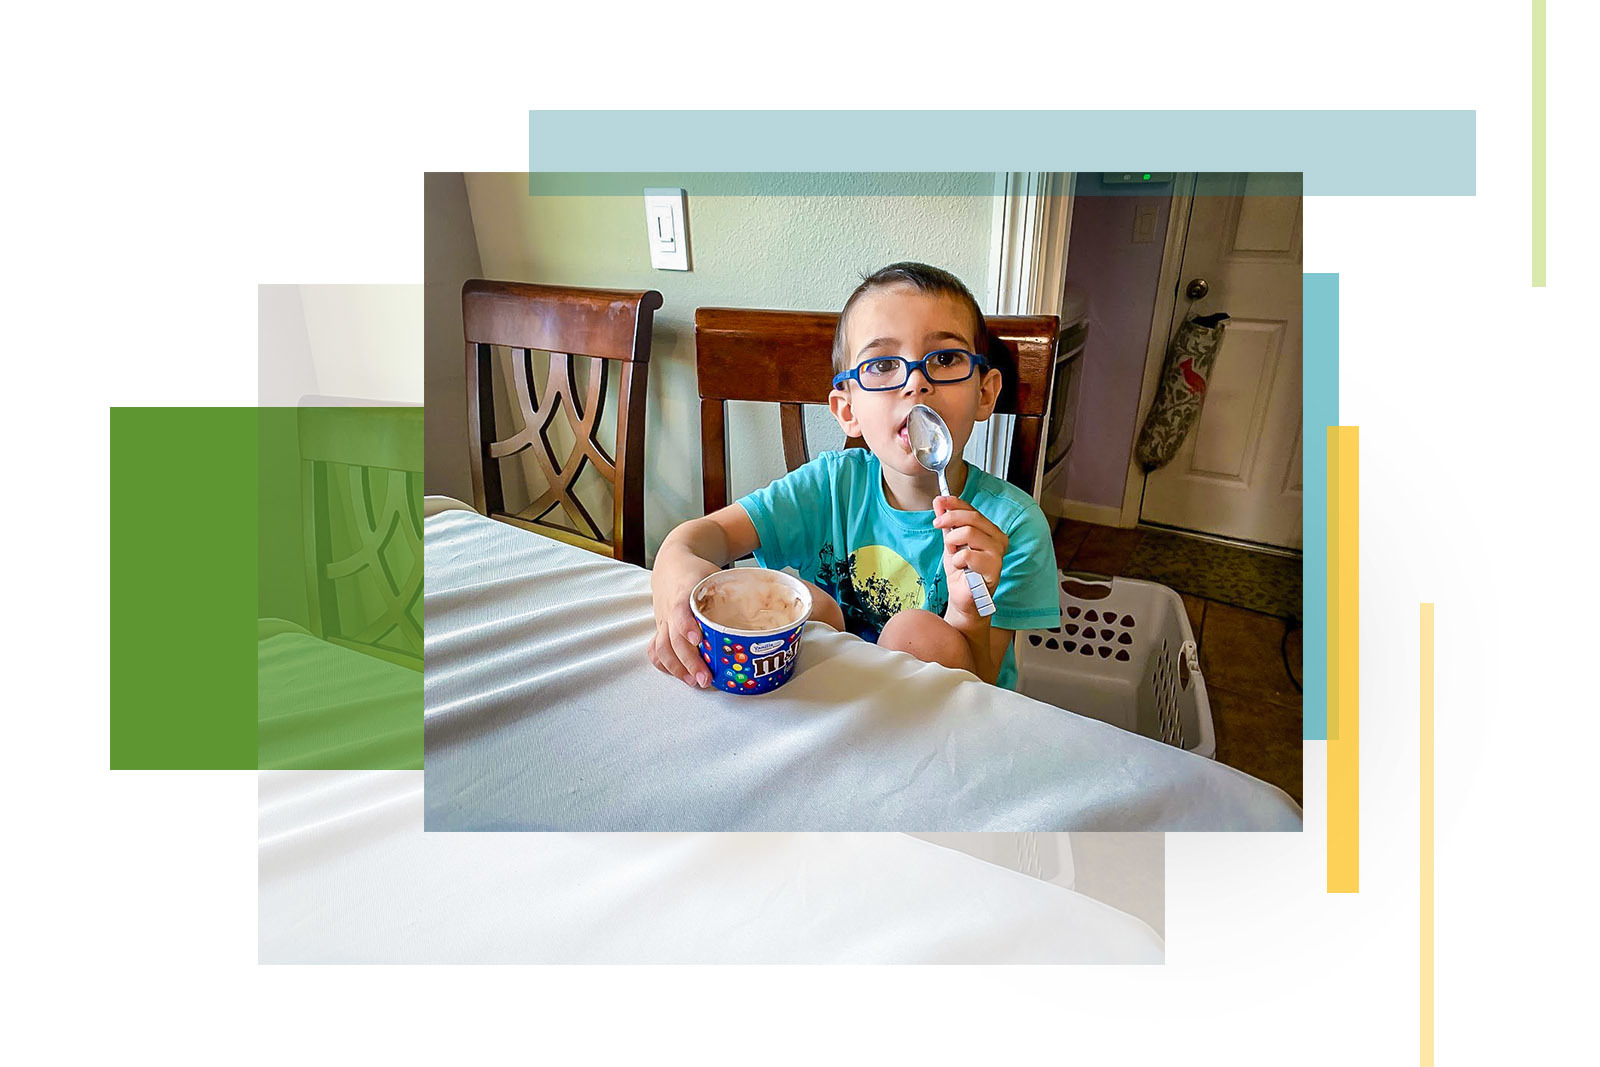 The winner of Regions' What a Difference a Day Makes contest is transforming the lives of children with autism.